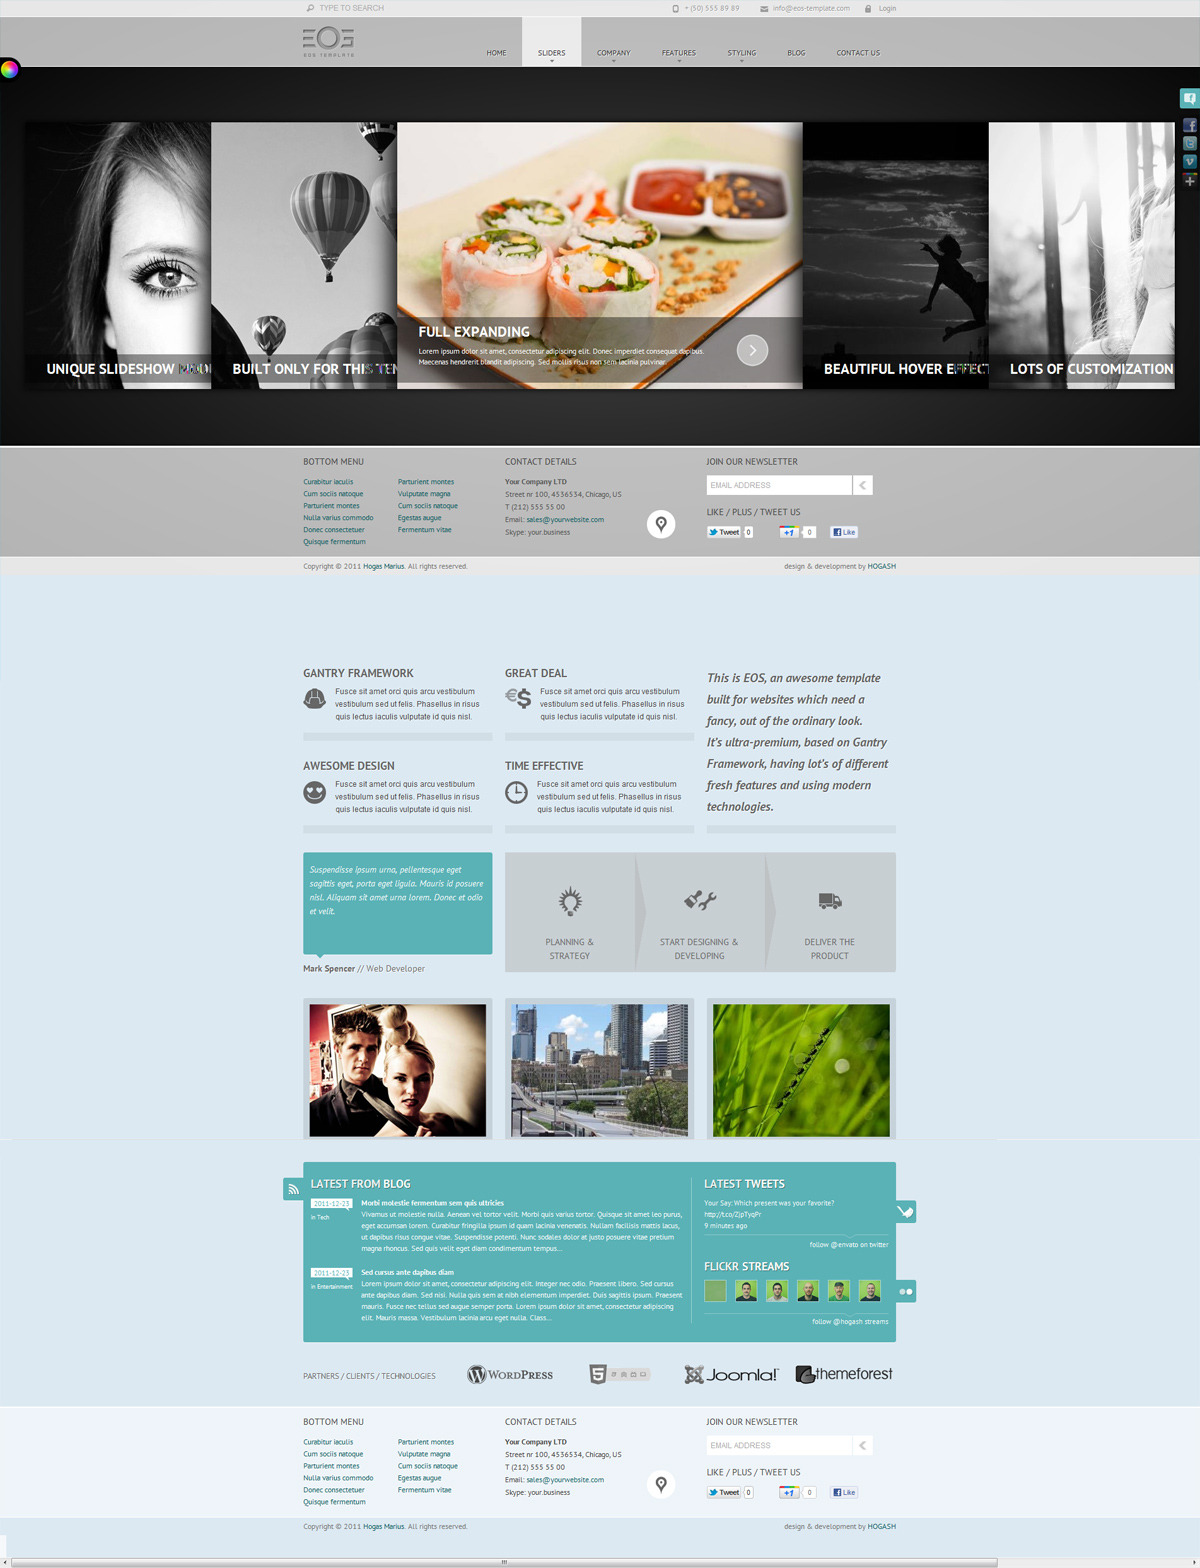 EOS - Template for Joomla - GENERAL PAGE - HOMEPAGE - FULL ACCORDION